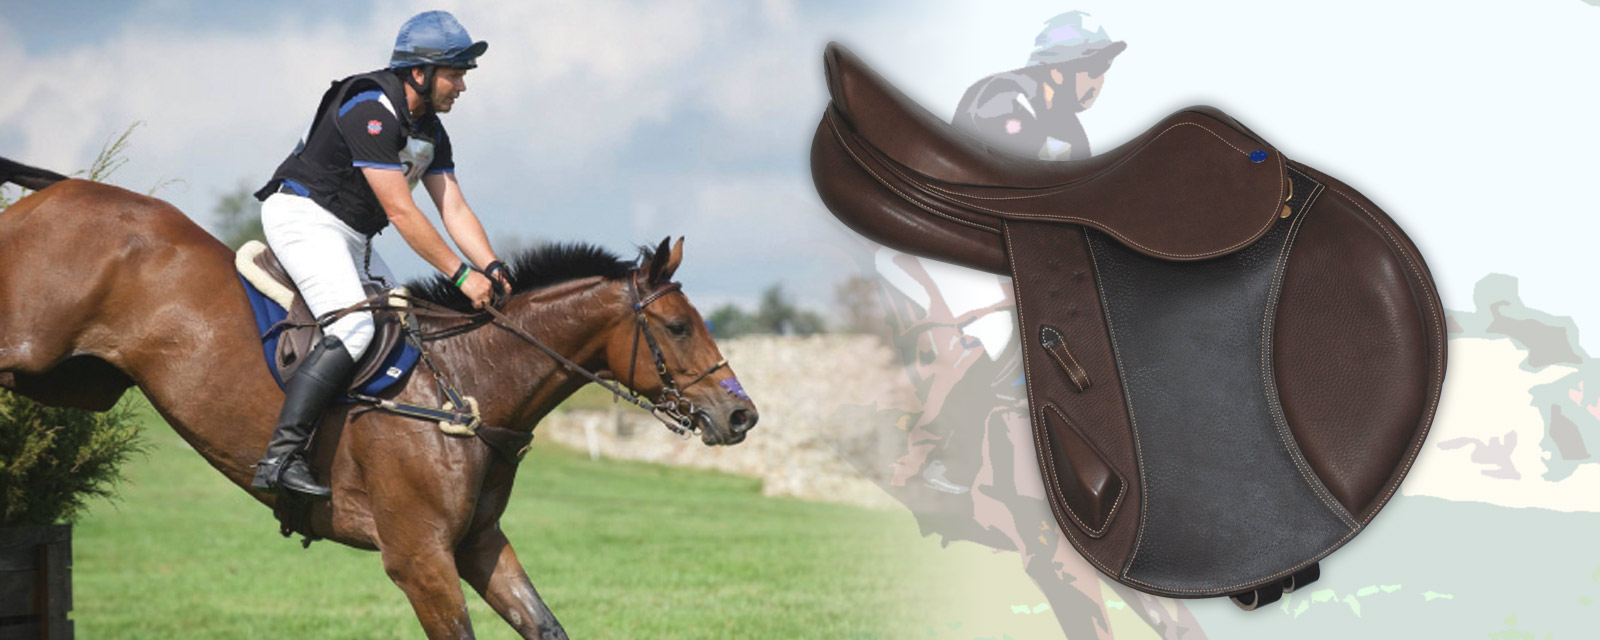 Southern Stars Saddles are tested to the Highest Standards